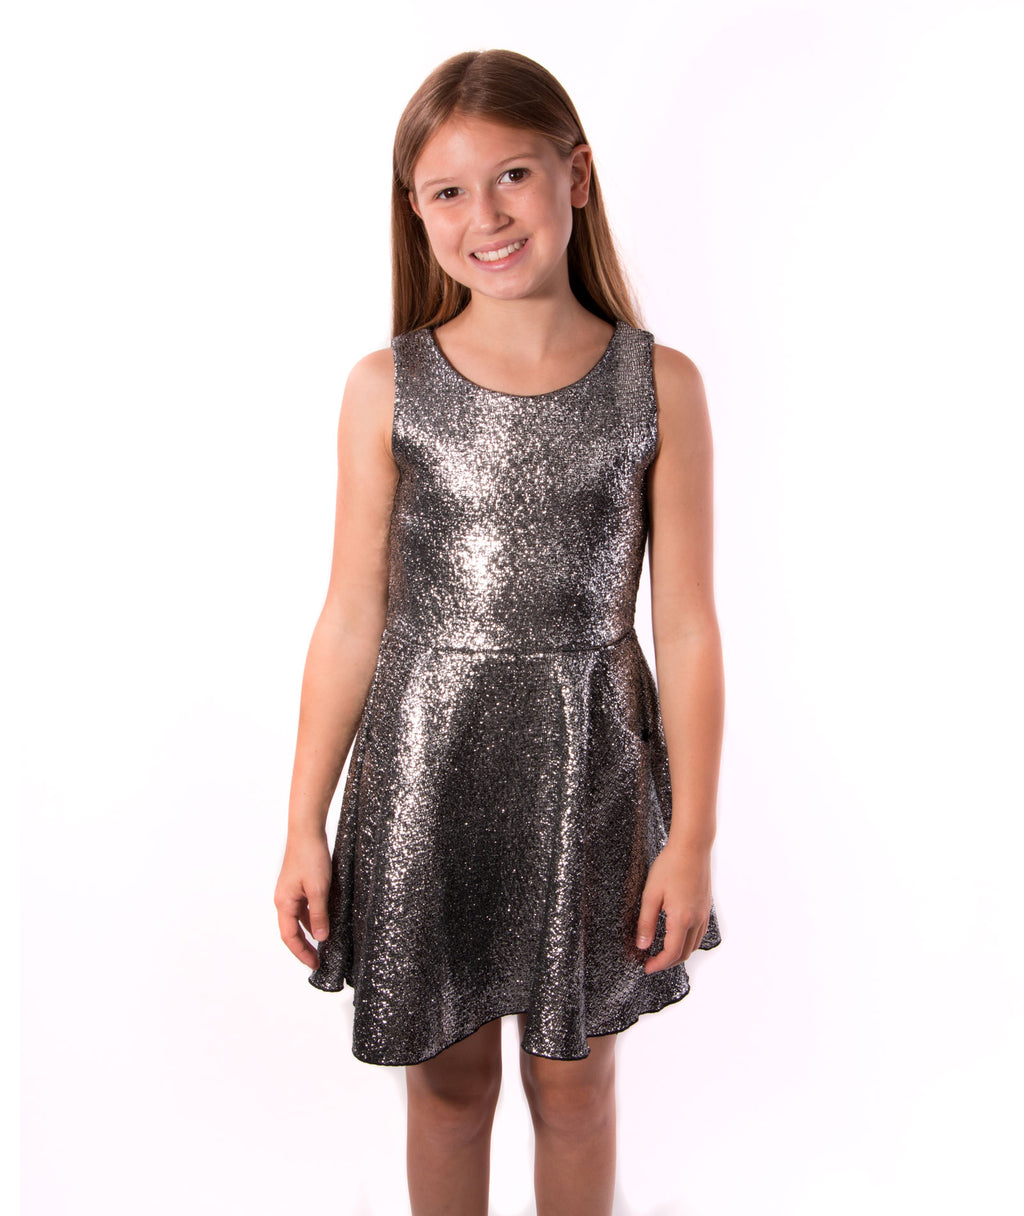 Zoe Ltd. Girls Metallic Fit and Flare Dress